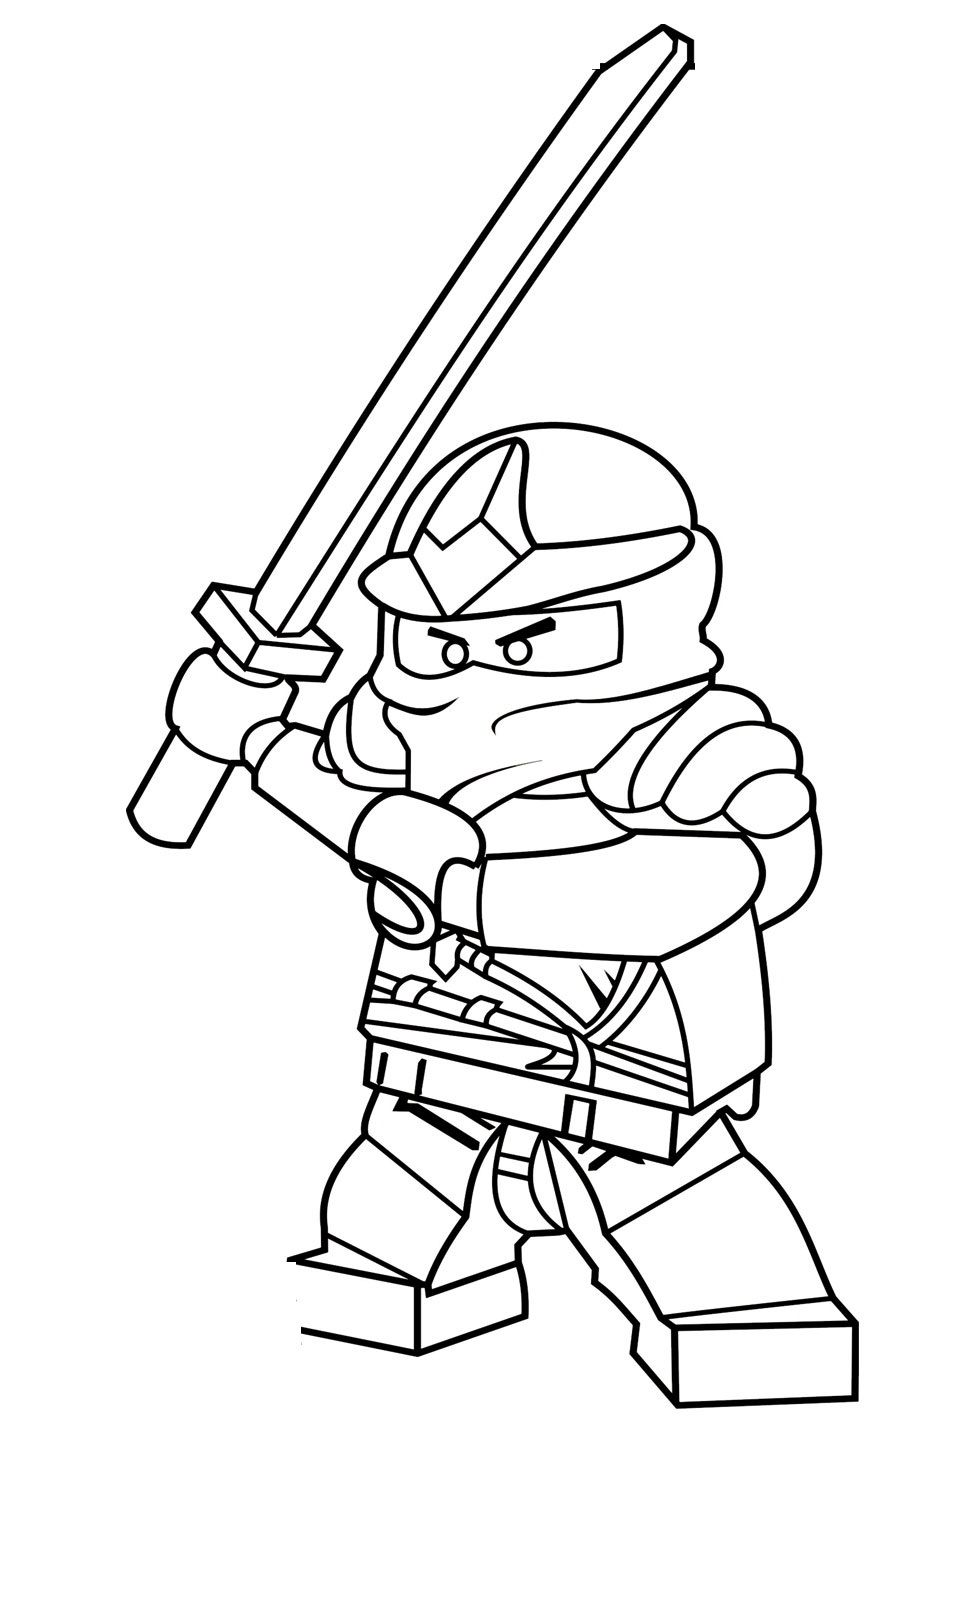 Lego Ninjago Masters Of Spinjitzu Often Simply Referred To As Ninjago Is A Popular Animated Action Ninjago Coloring Pages Lego Coloring Lego Coloring Pages